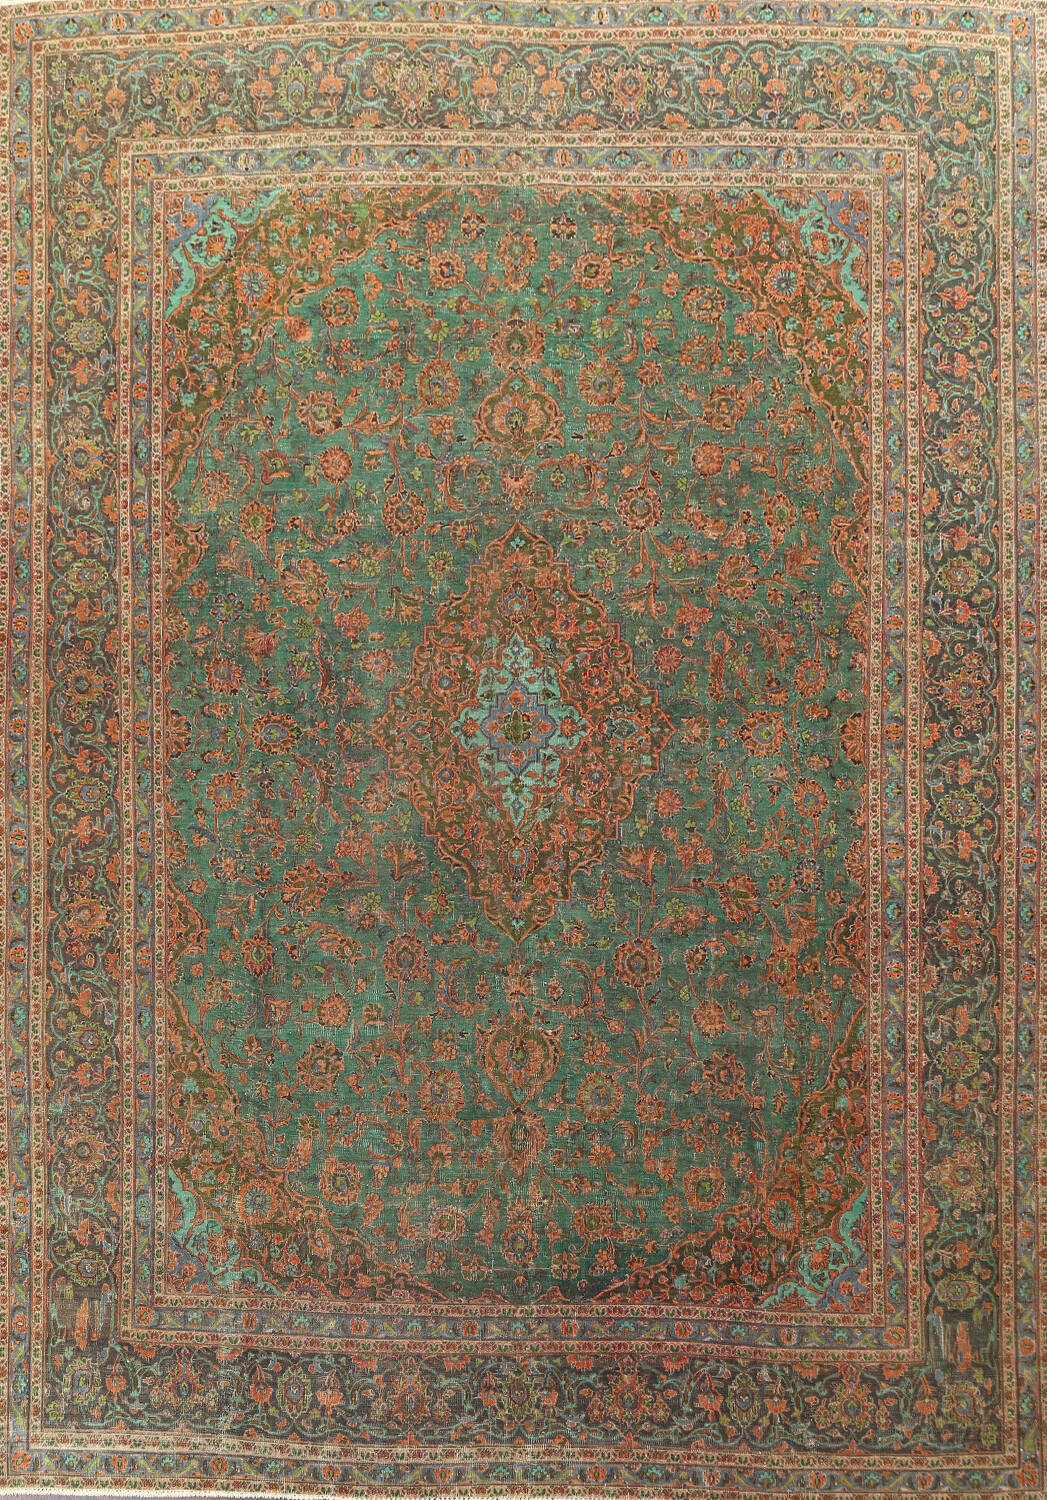 Antique Over-Dye Kashan Persian Area Rug 9x12 image 1